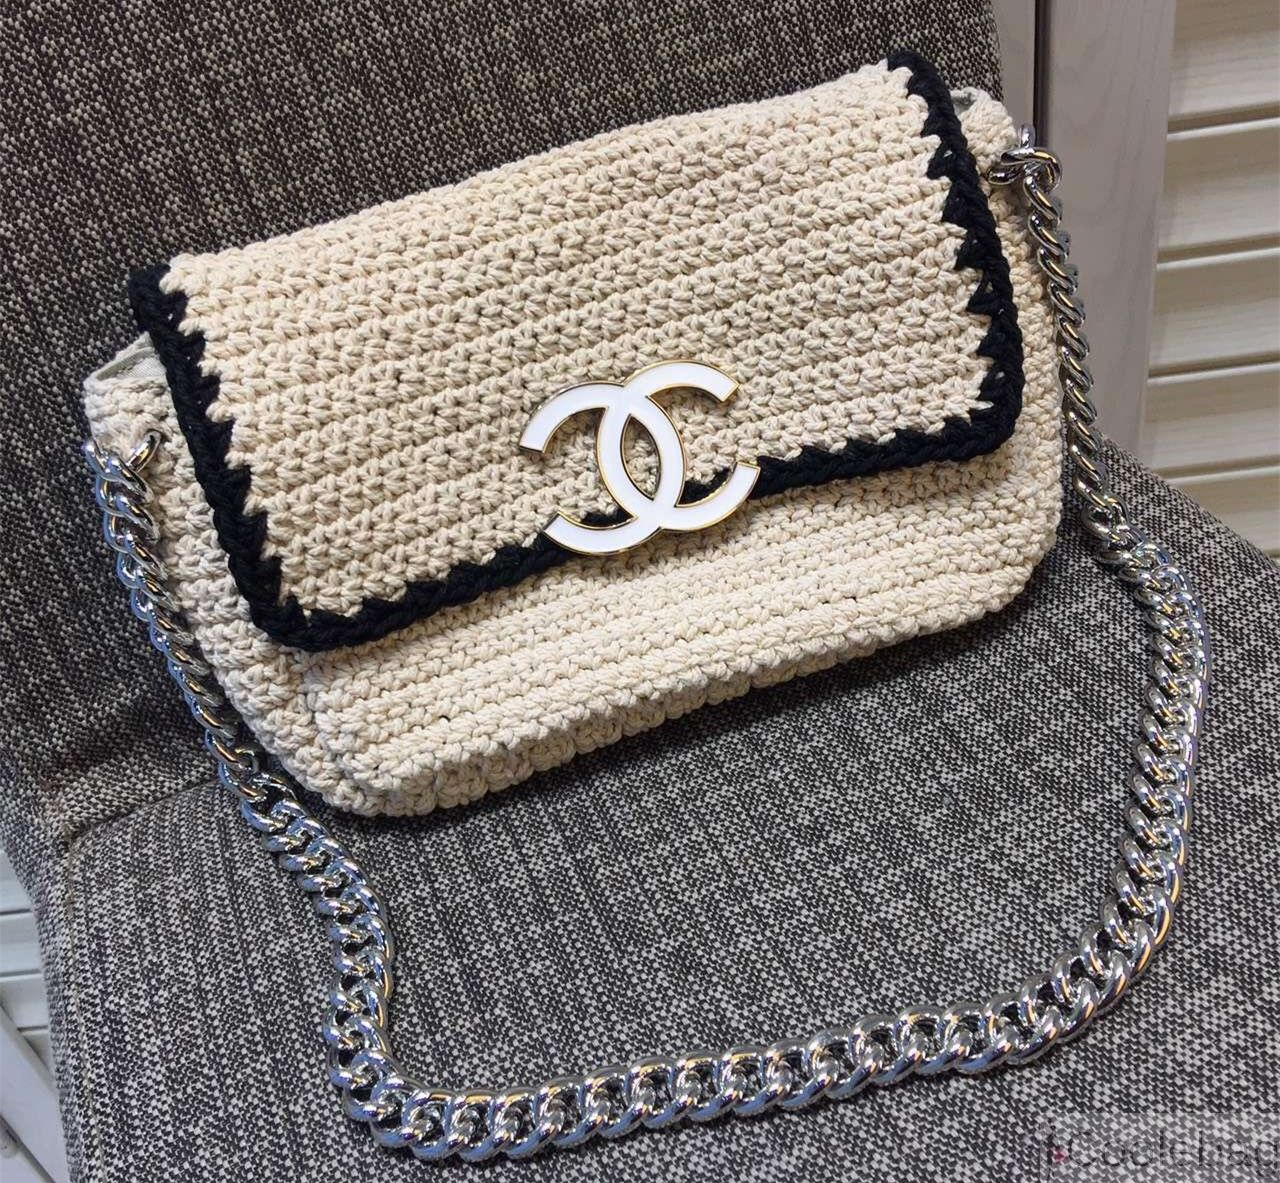 b0da2277130a Chanel Crochet-work Flap Bag 2016